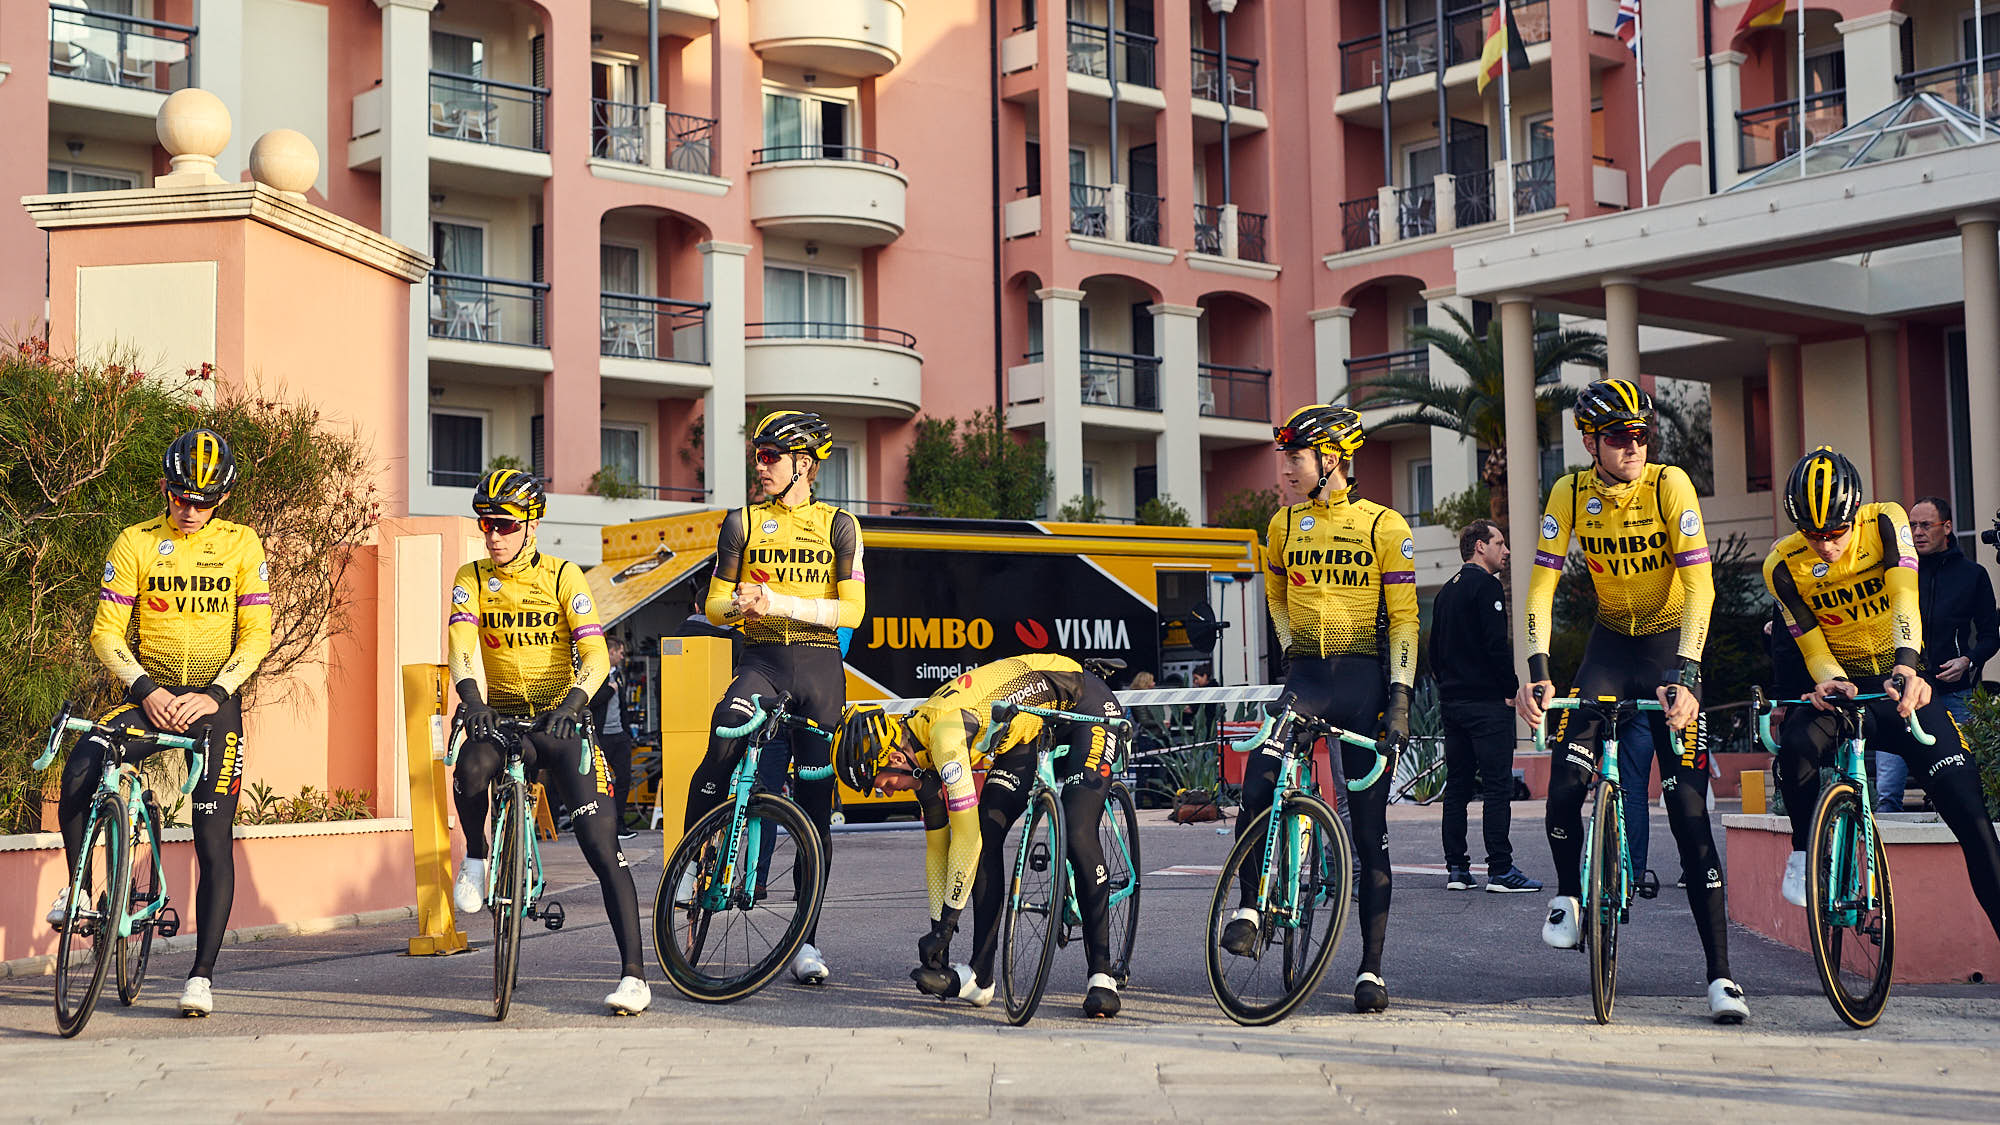 Jumbo-Visma cyclists before training in Alicante